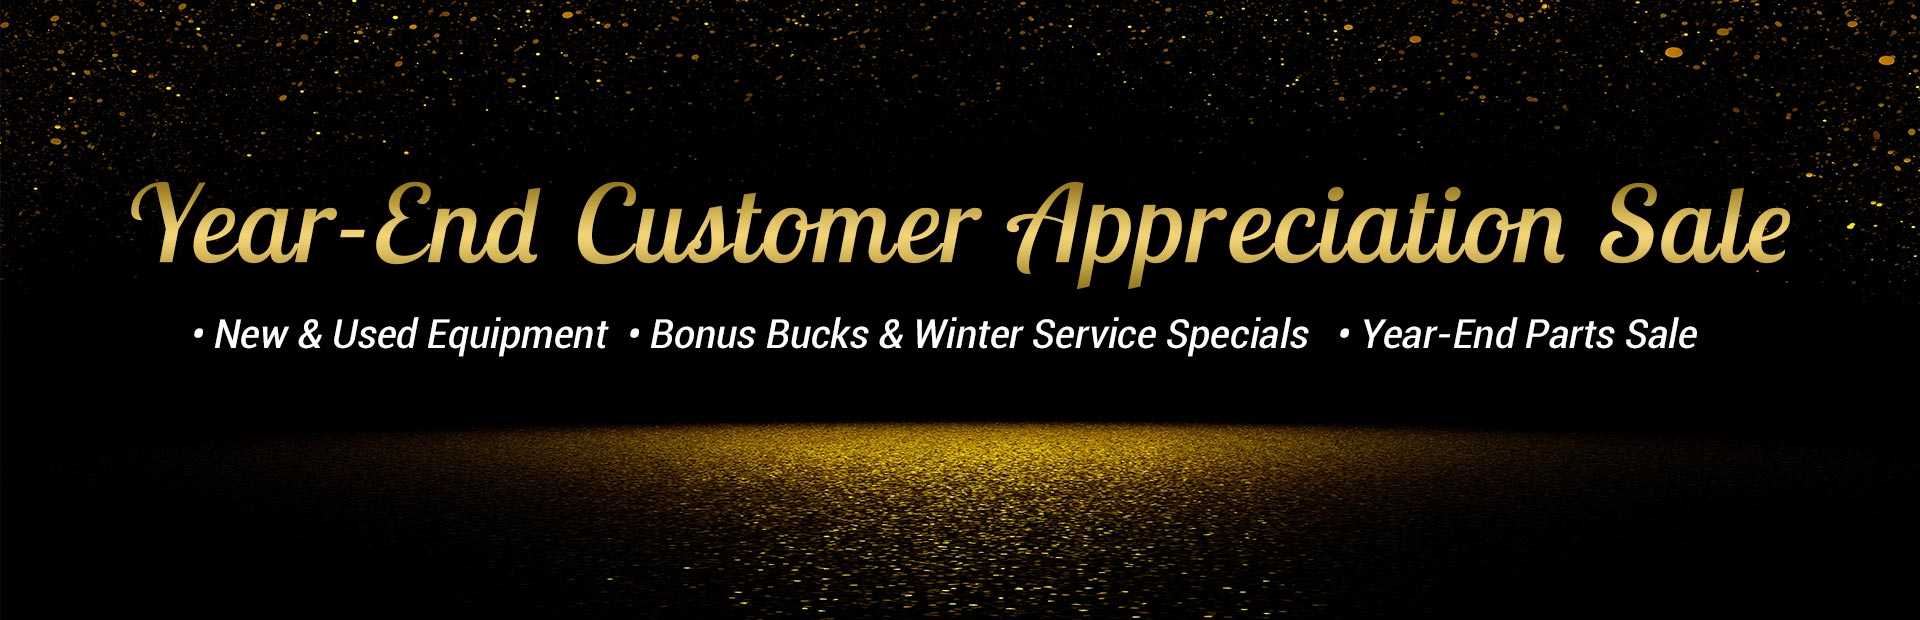 Join us for our Year-End Customer Appreciation Sale! Click here for details.